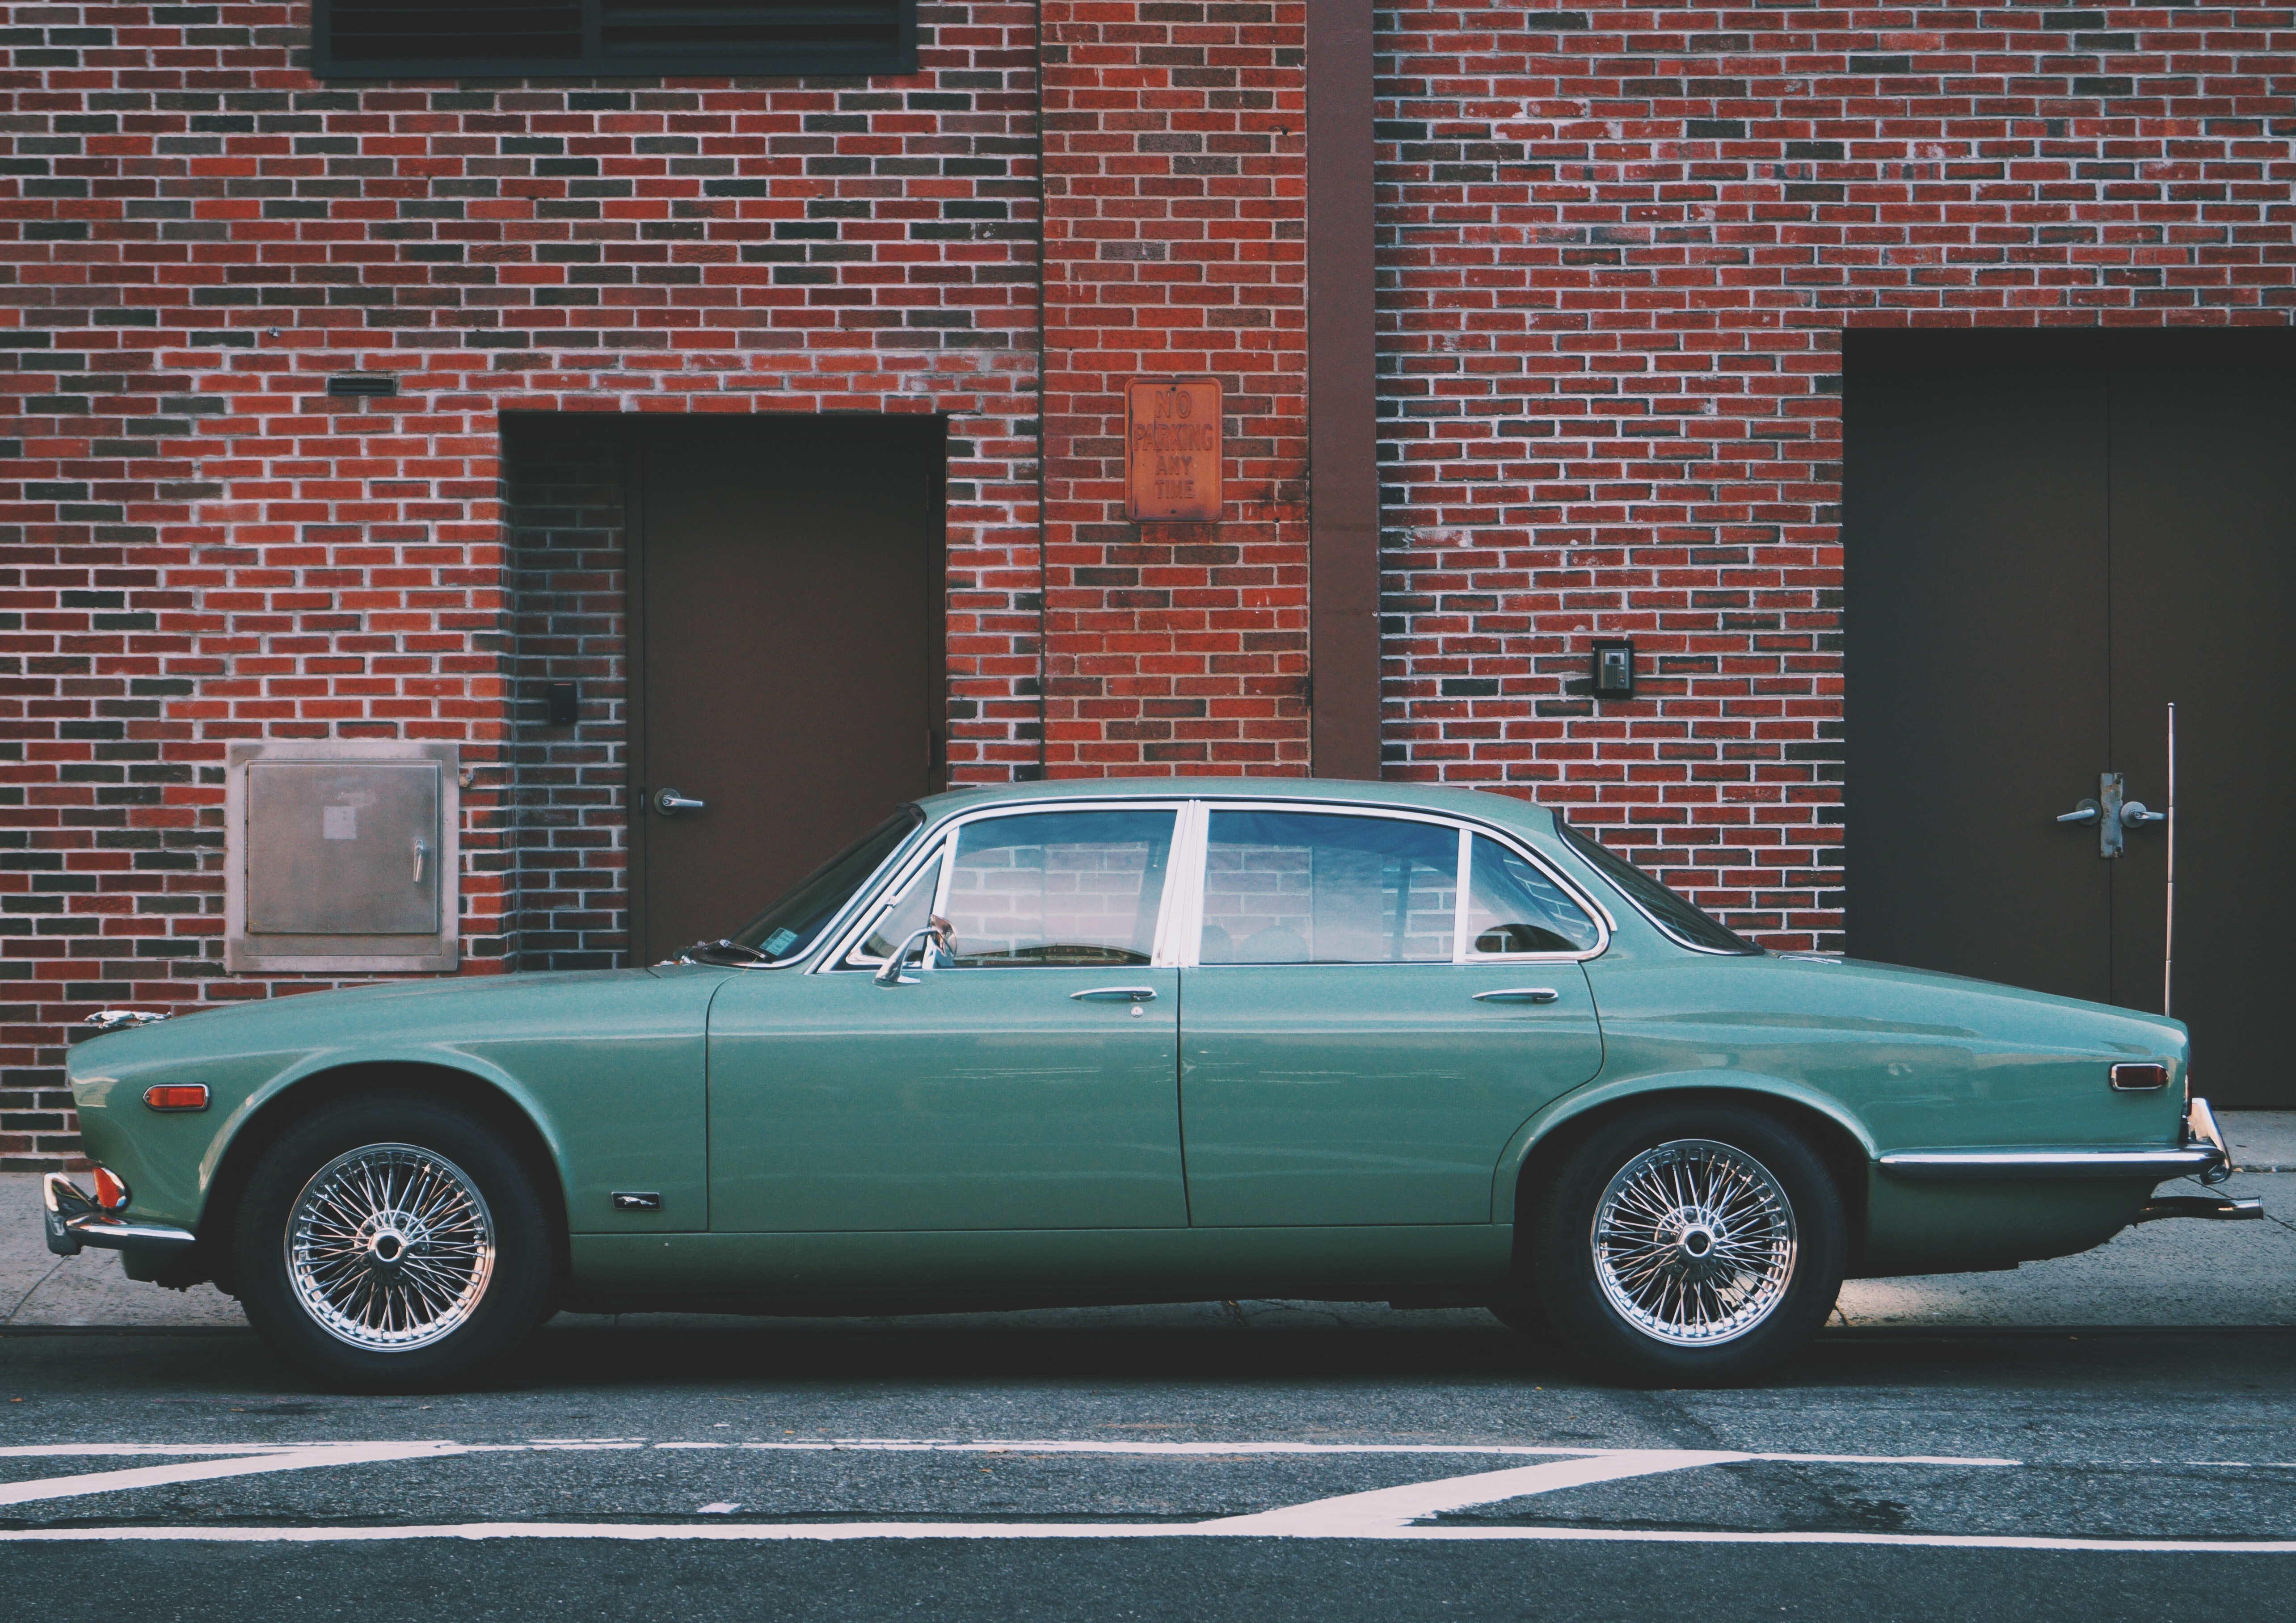 A classic green car is parked in front of a brick building in New York.